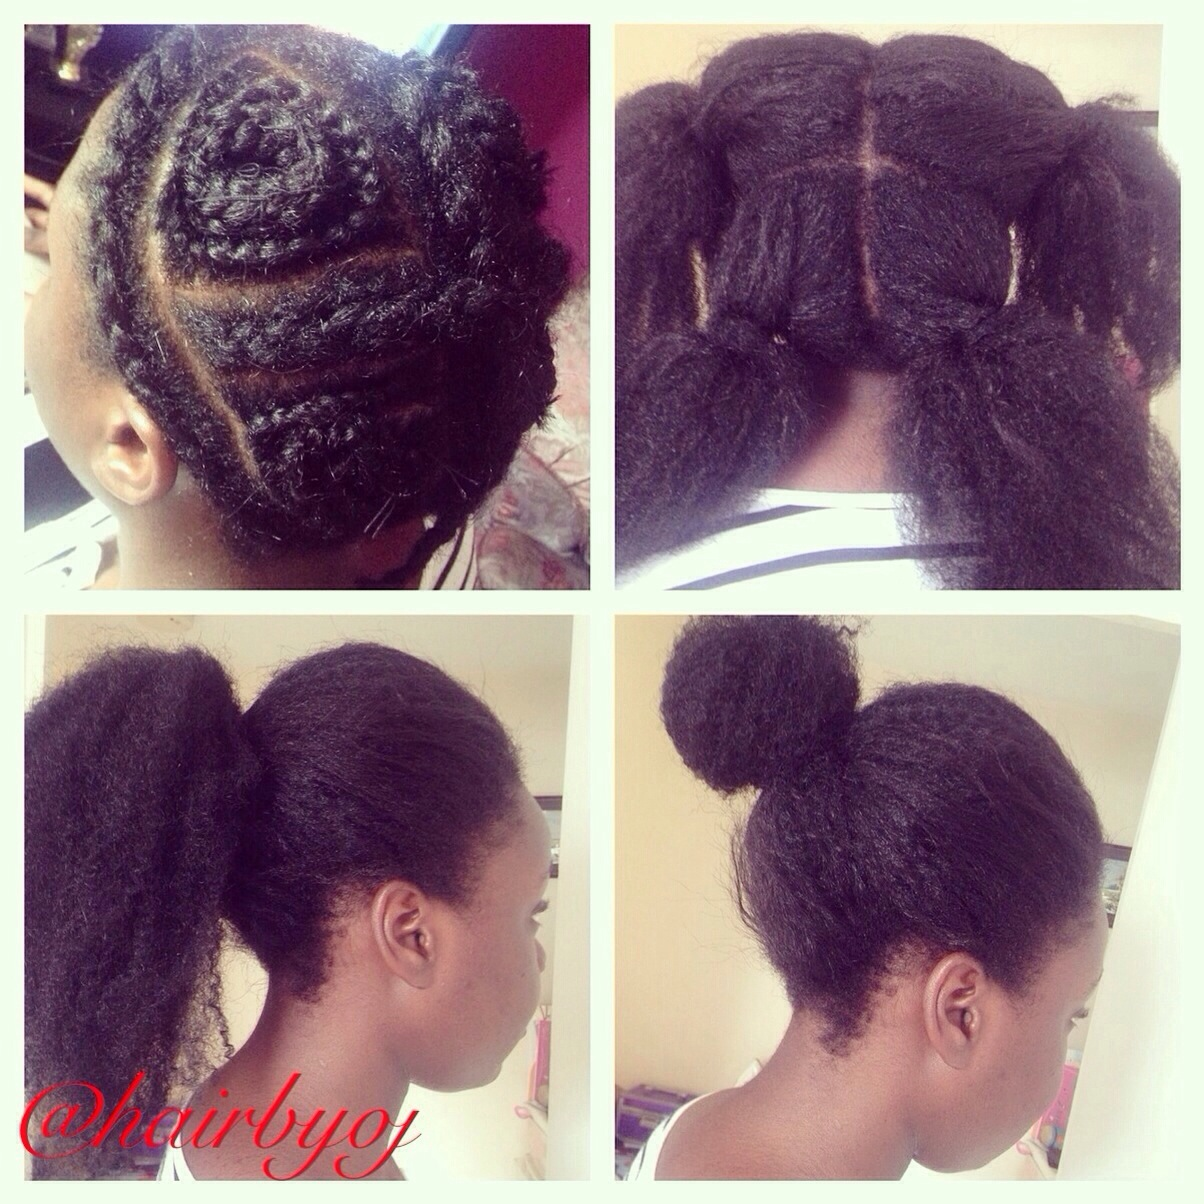 Crochet Hair Styles Vixen : Chest length vixen crochet braids with Marley hair ? hairbyoj